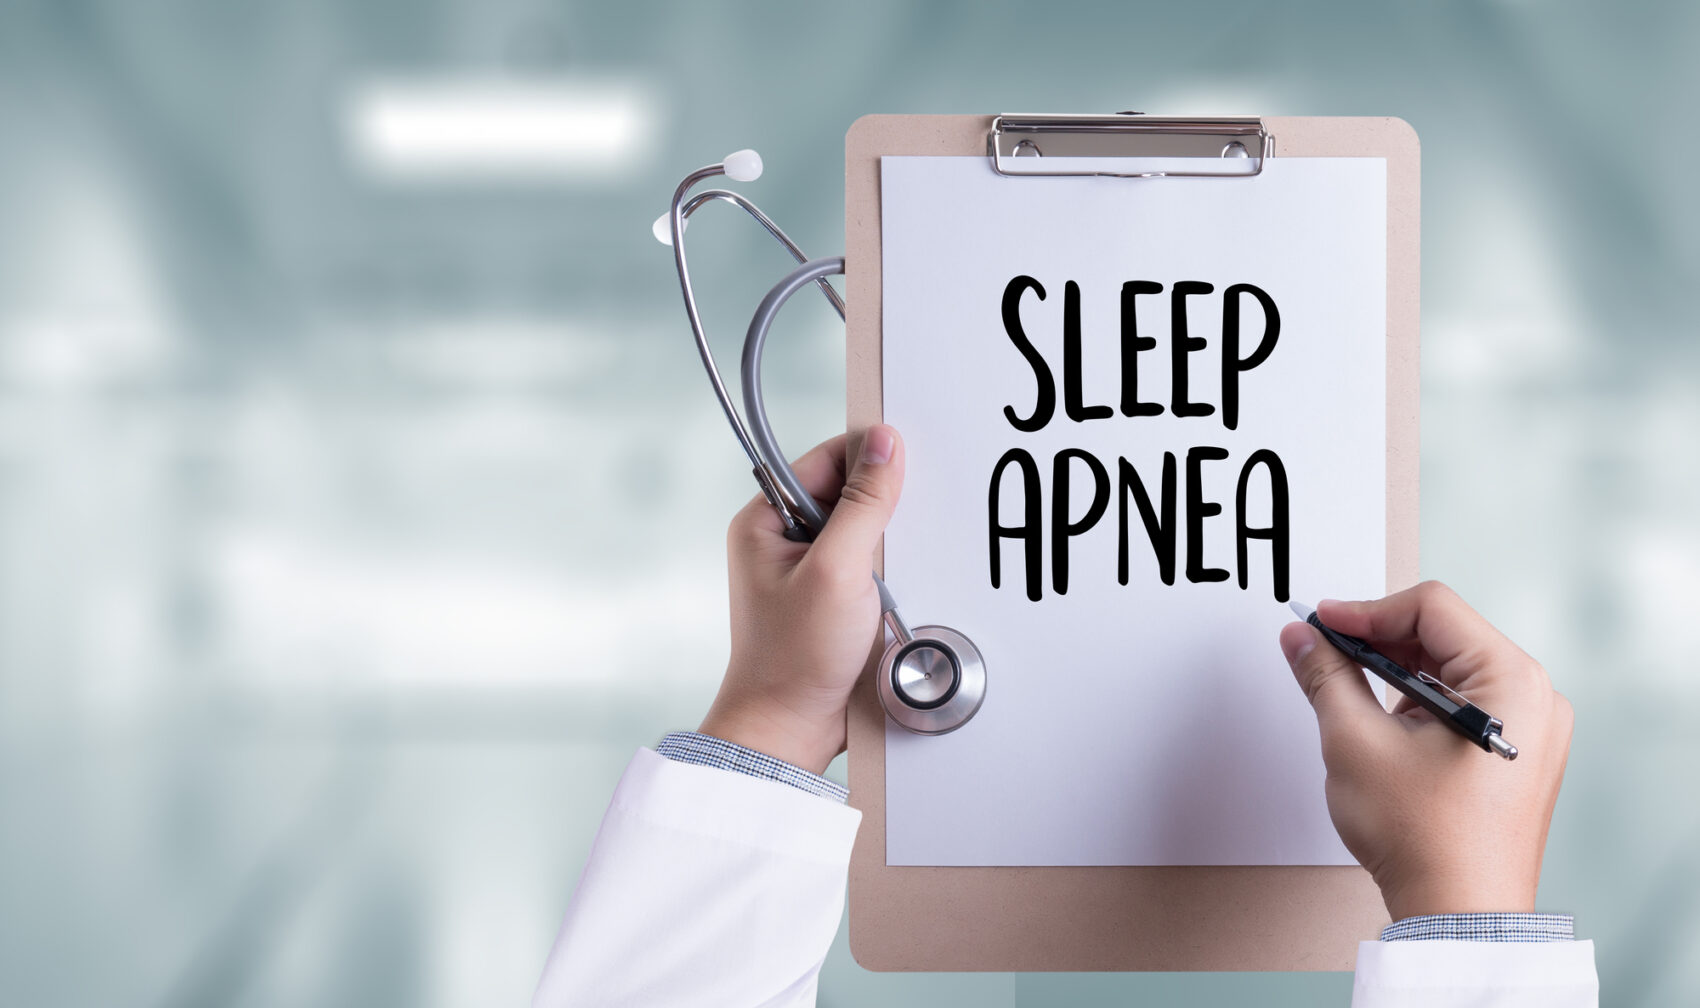 sleep apnea on clipboard